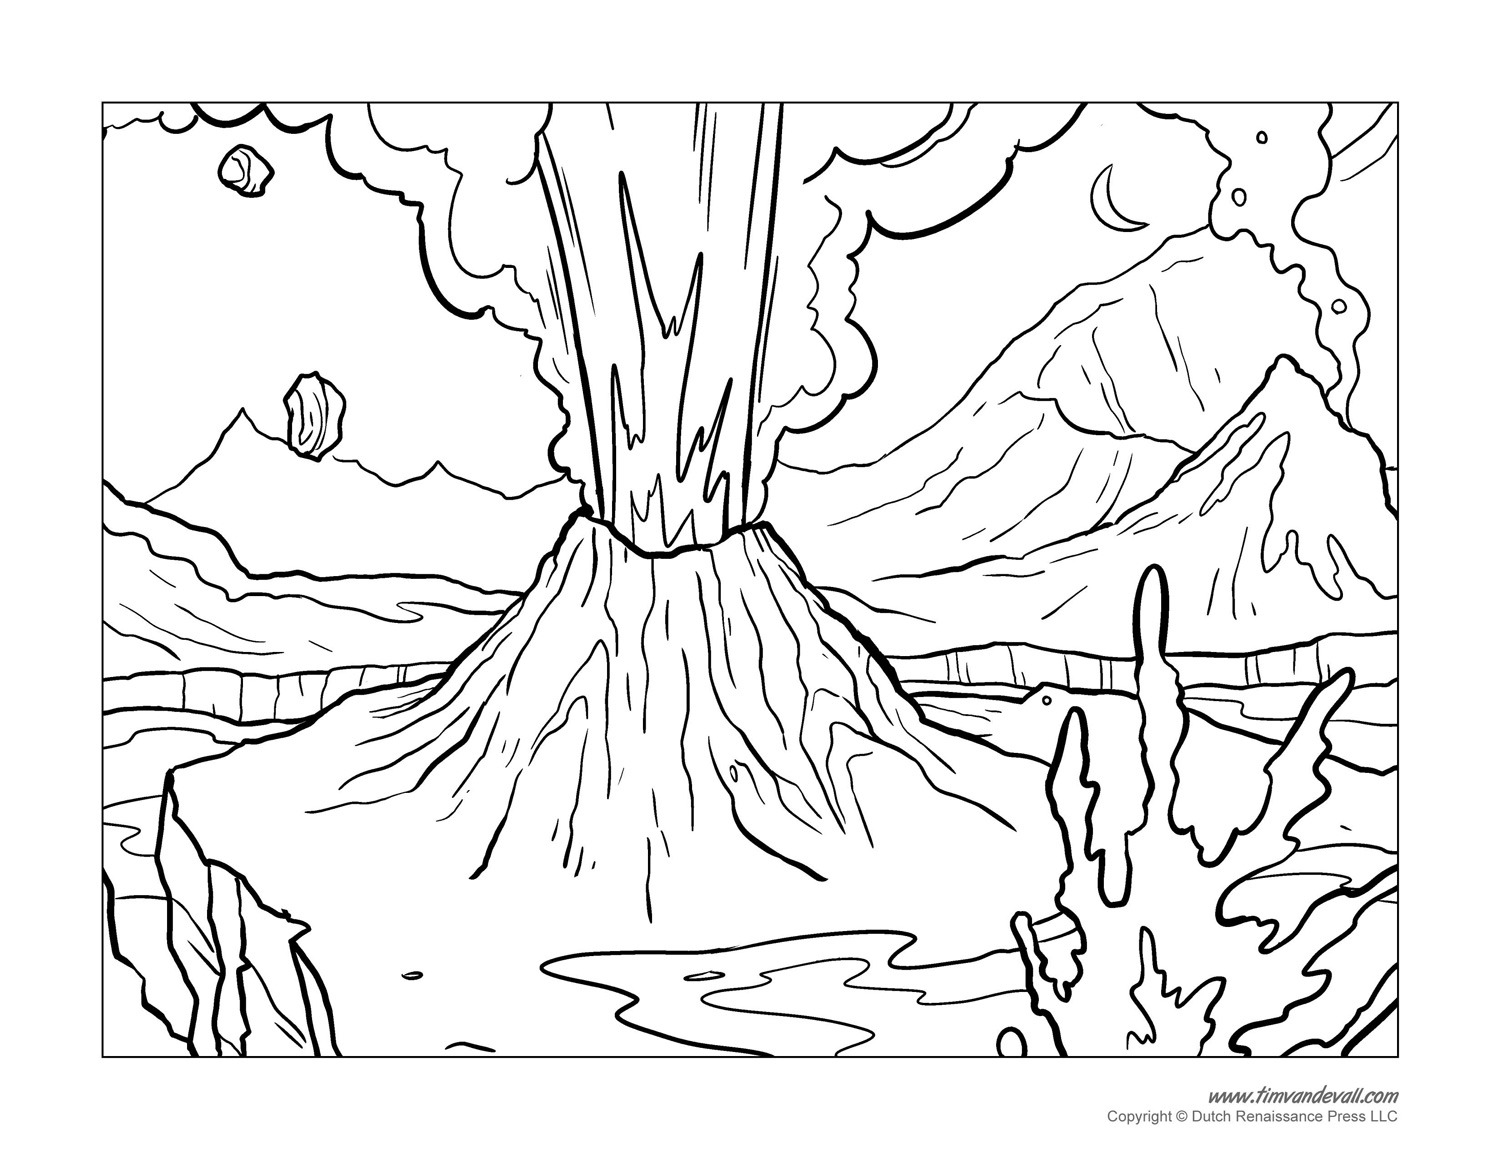 coloring sheet volcano volcano coloring pages getcoloringpagescom sheet volcano coloring